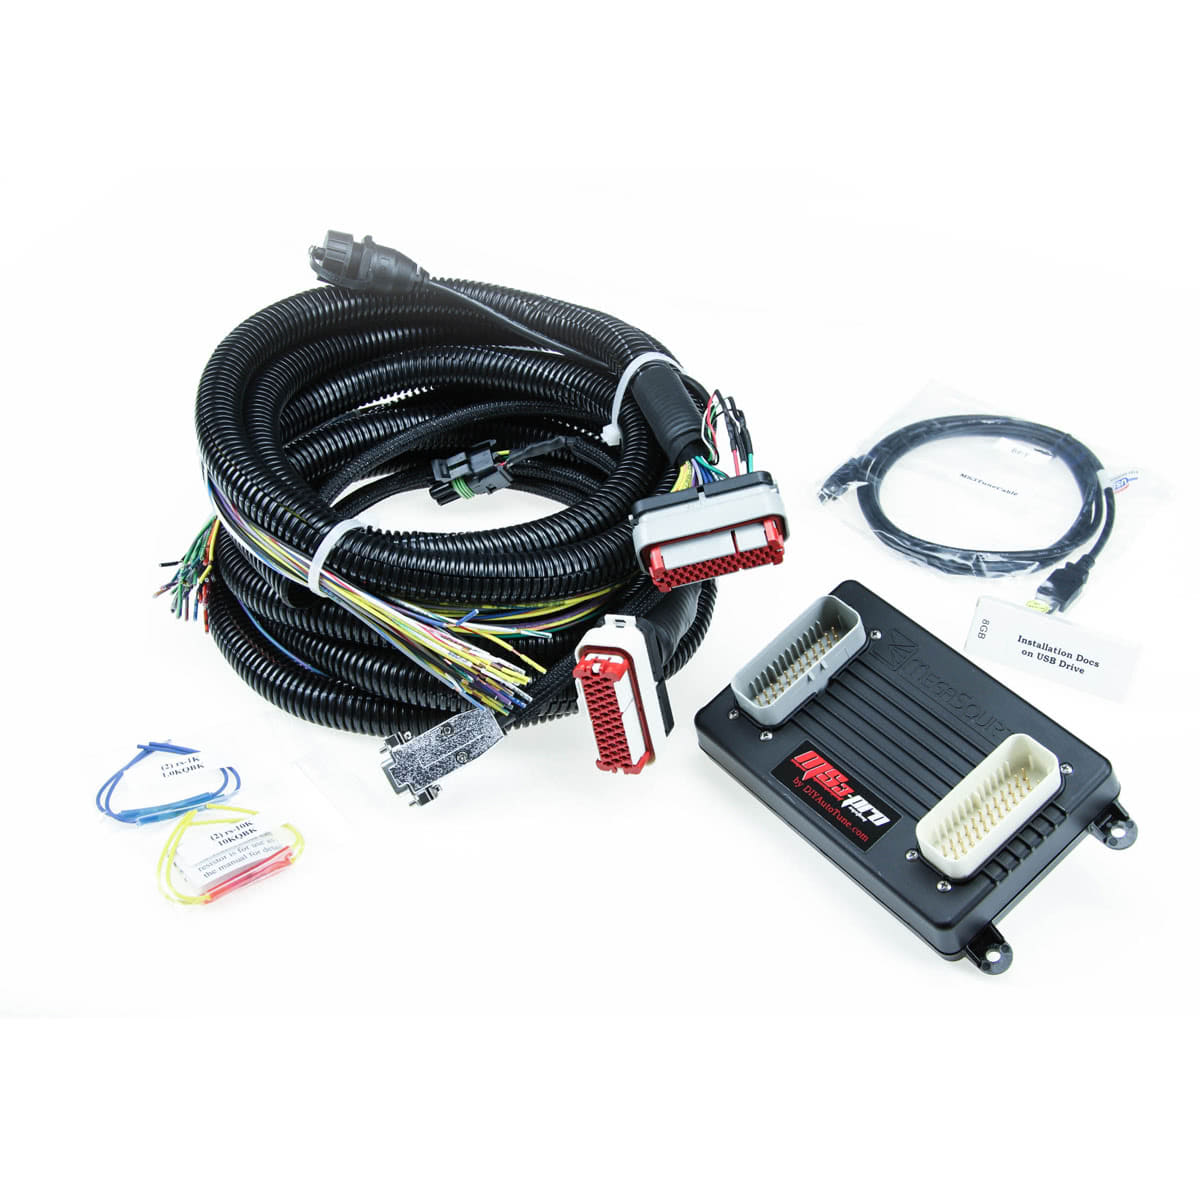 MS3Pro Pkg1_3 4 6 standalone wiring harness toyota pickup wiring harness diagram DOHC 4.6 Wiring Harness at mifinder.co